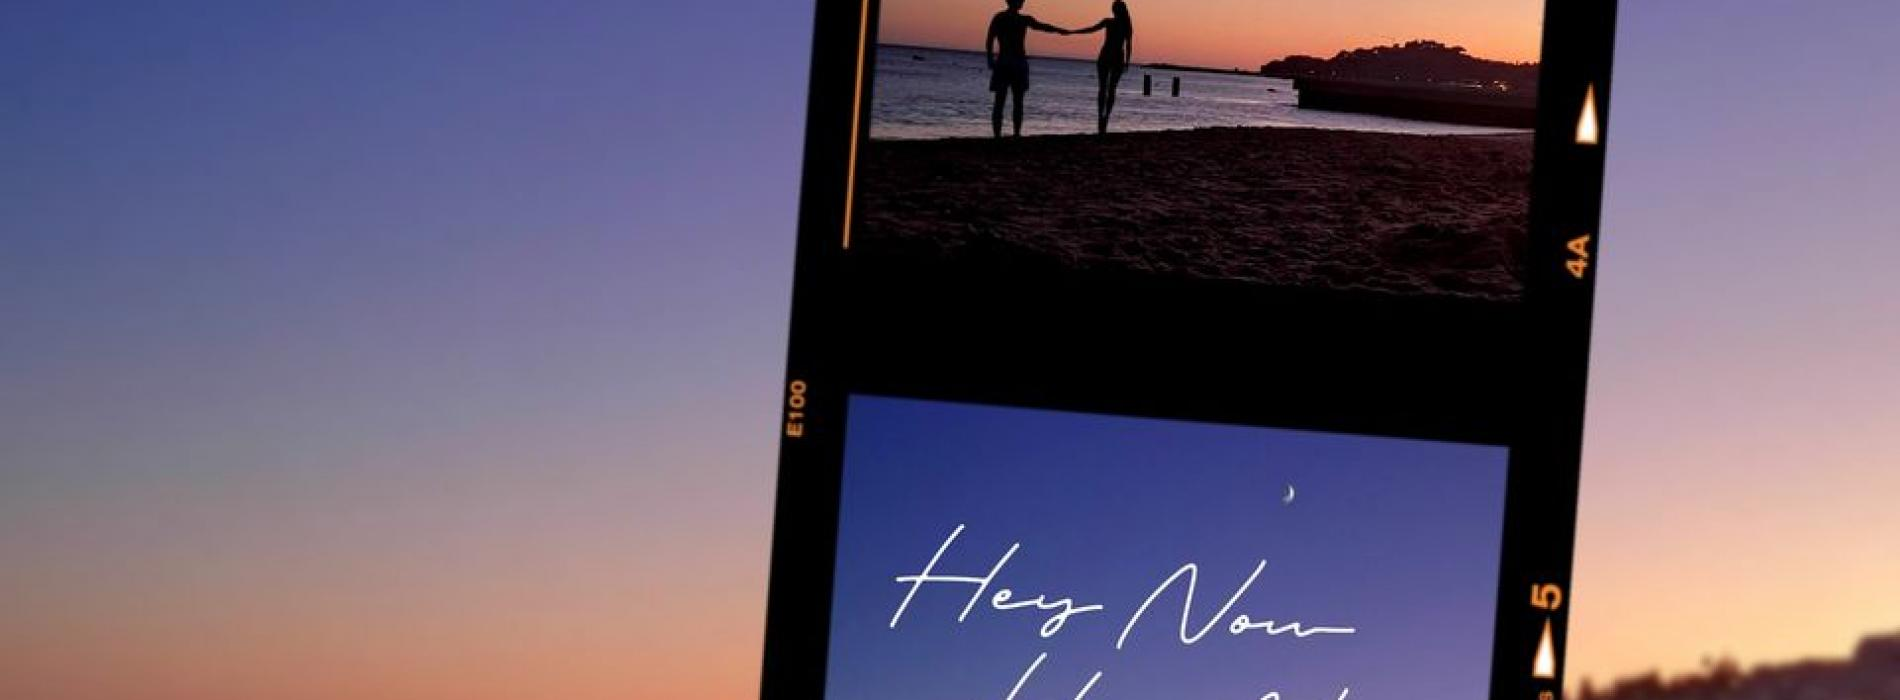 New Music : ConKi – Hey Now Hey Now (Don't Dream It's Over)(feat Minesh Dissanayake)